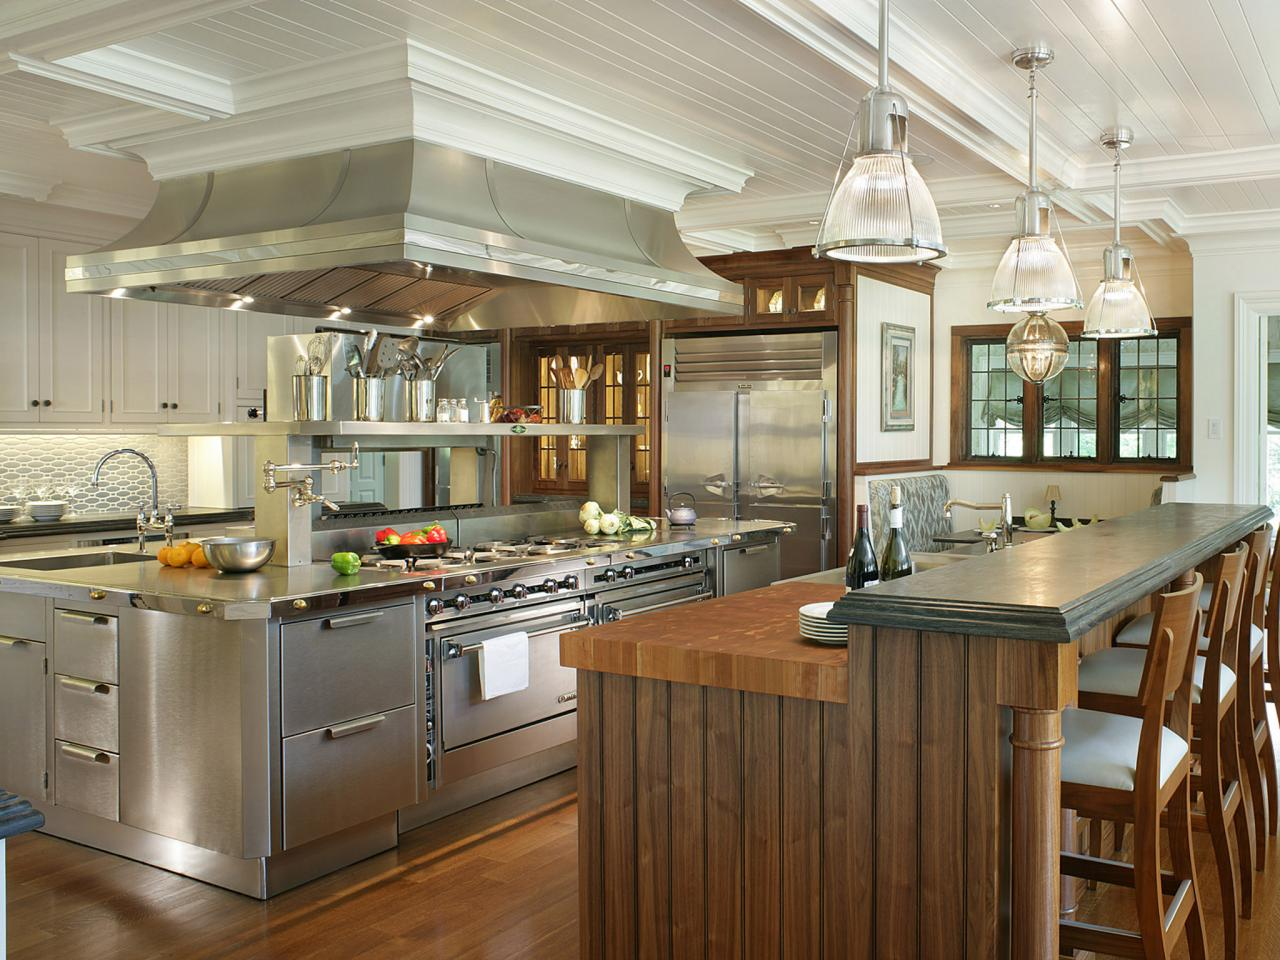 Kitchens Designs kitchen design styles: pictures, ideas & tips from hgtv | hgtv